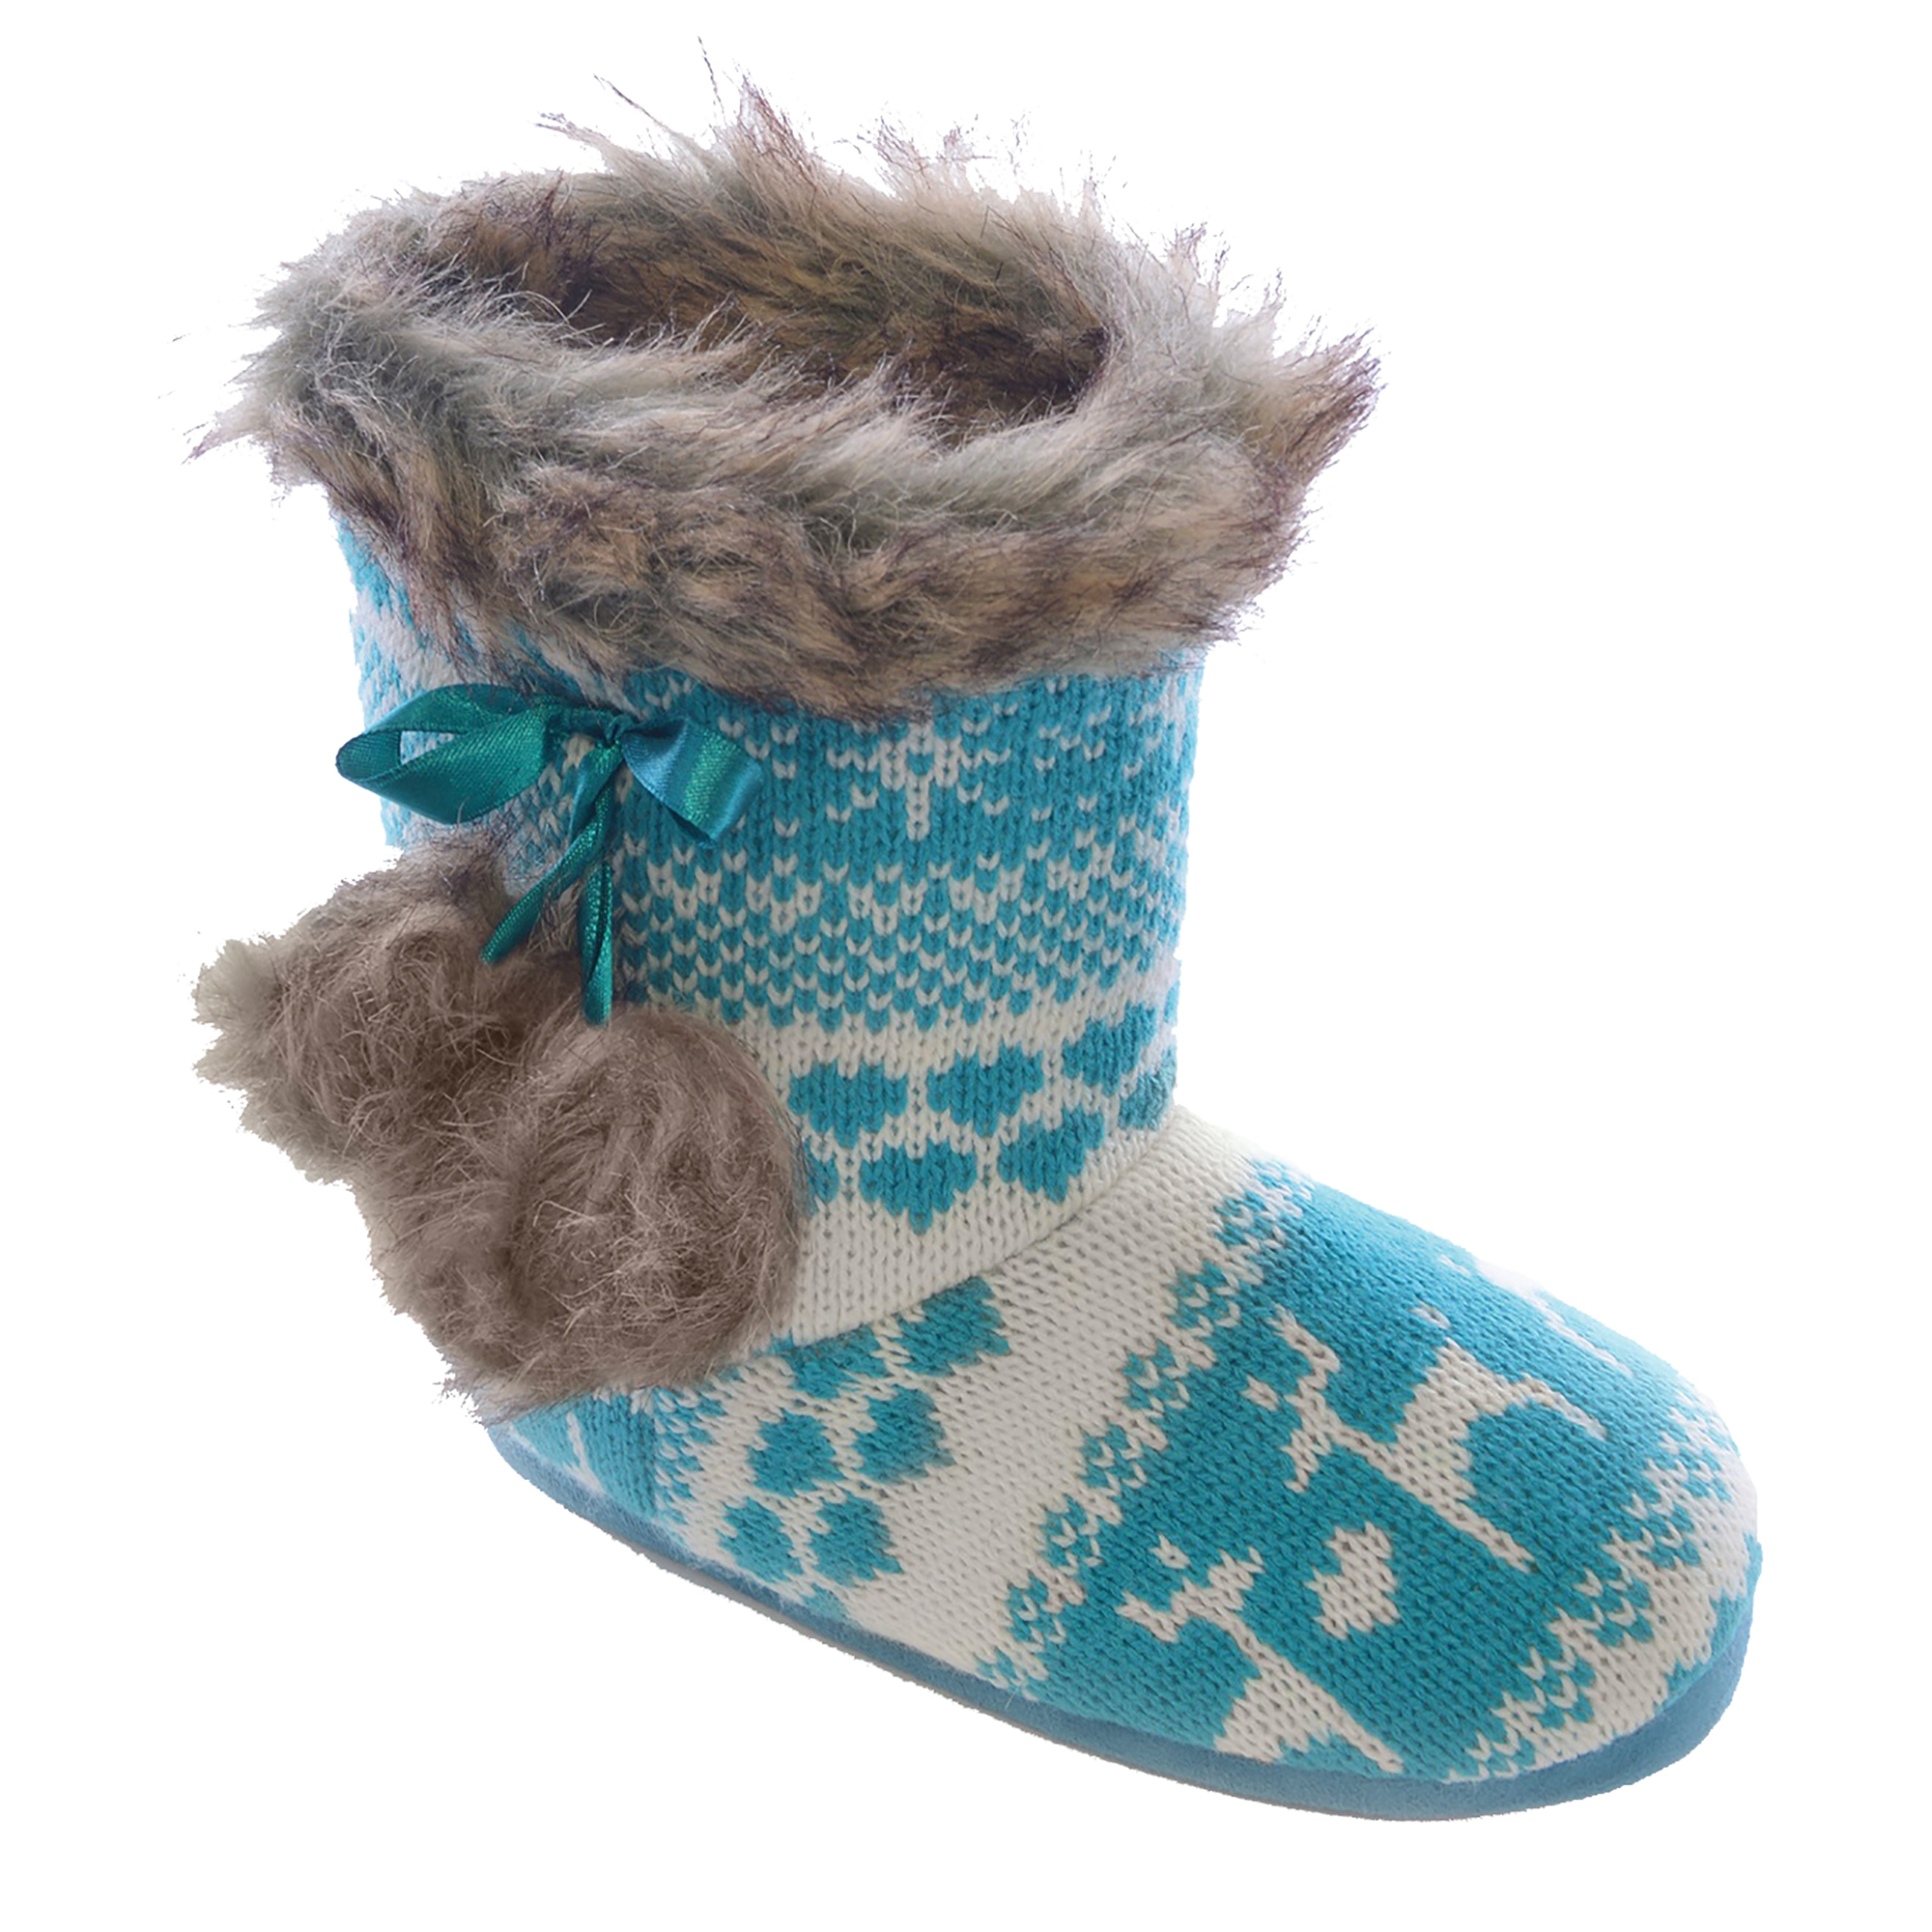 Childrens/Kids/Girls Reindeer Pattern Knitted Winter Boot Slippers eBay